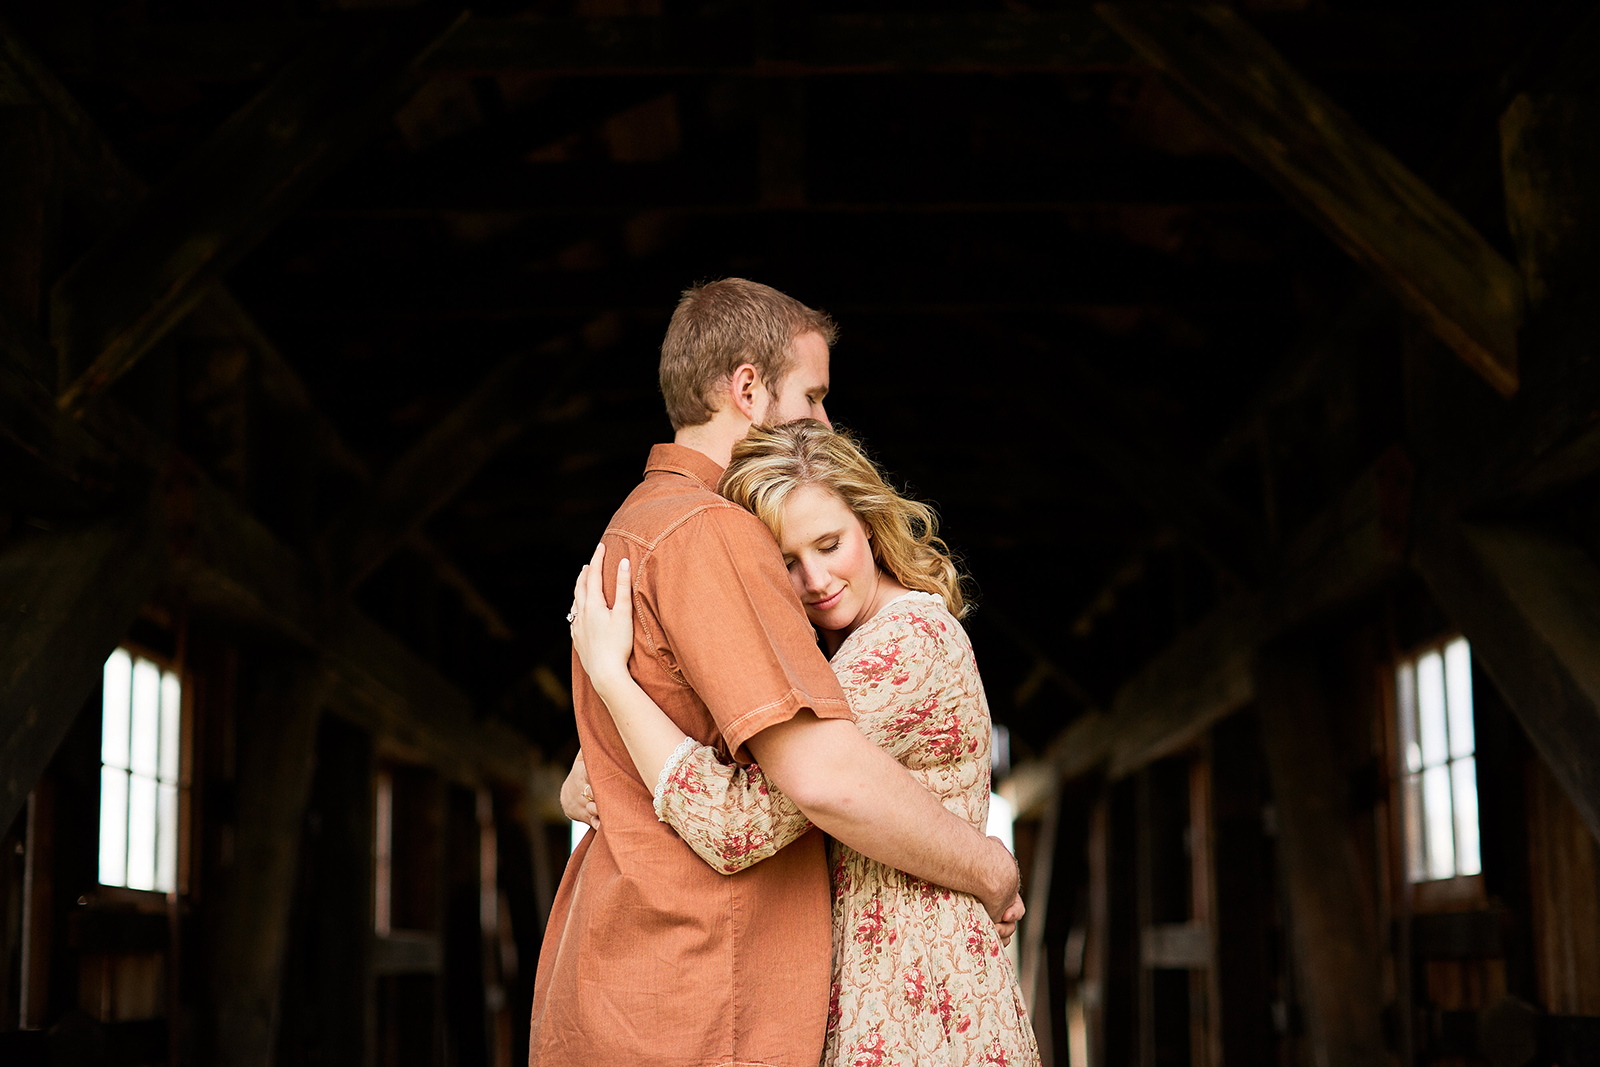 Daniel Boone Home Engagement Session in St Charles County by Oldani Photography St. Louis Wedding Photographers9.jpg